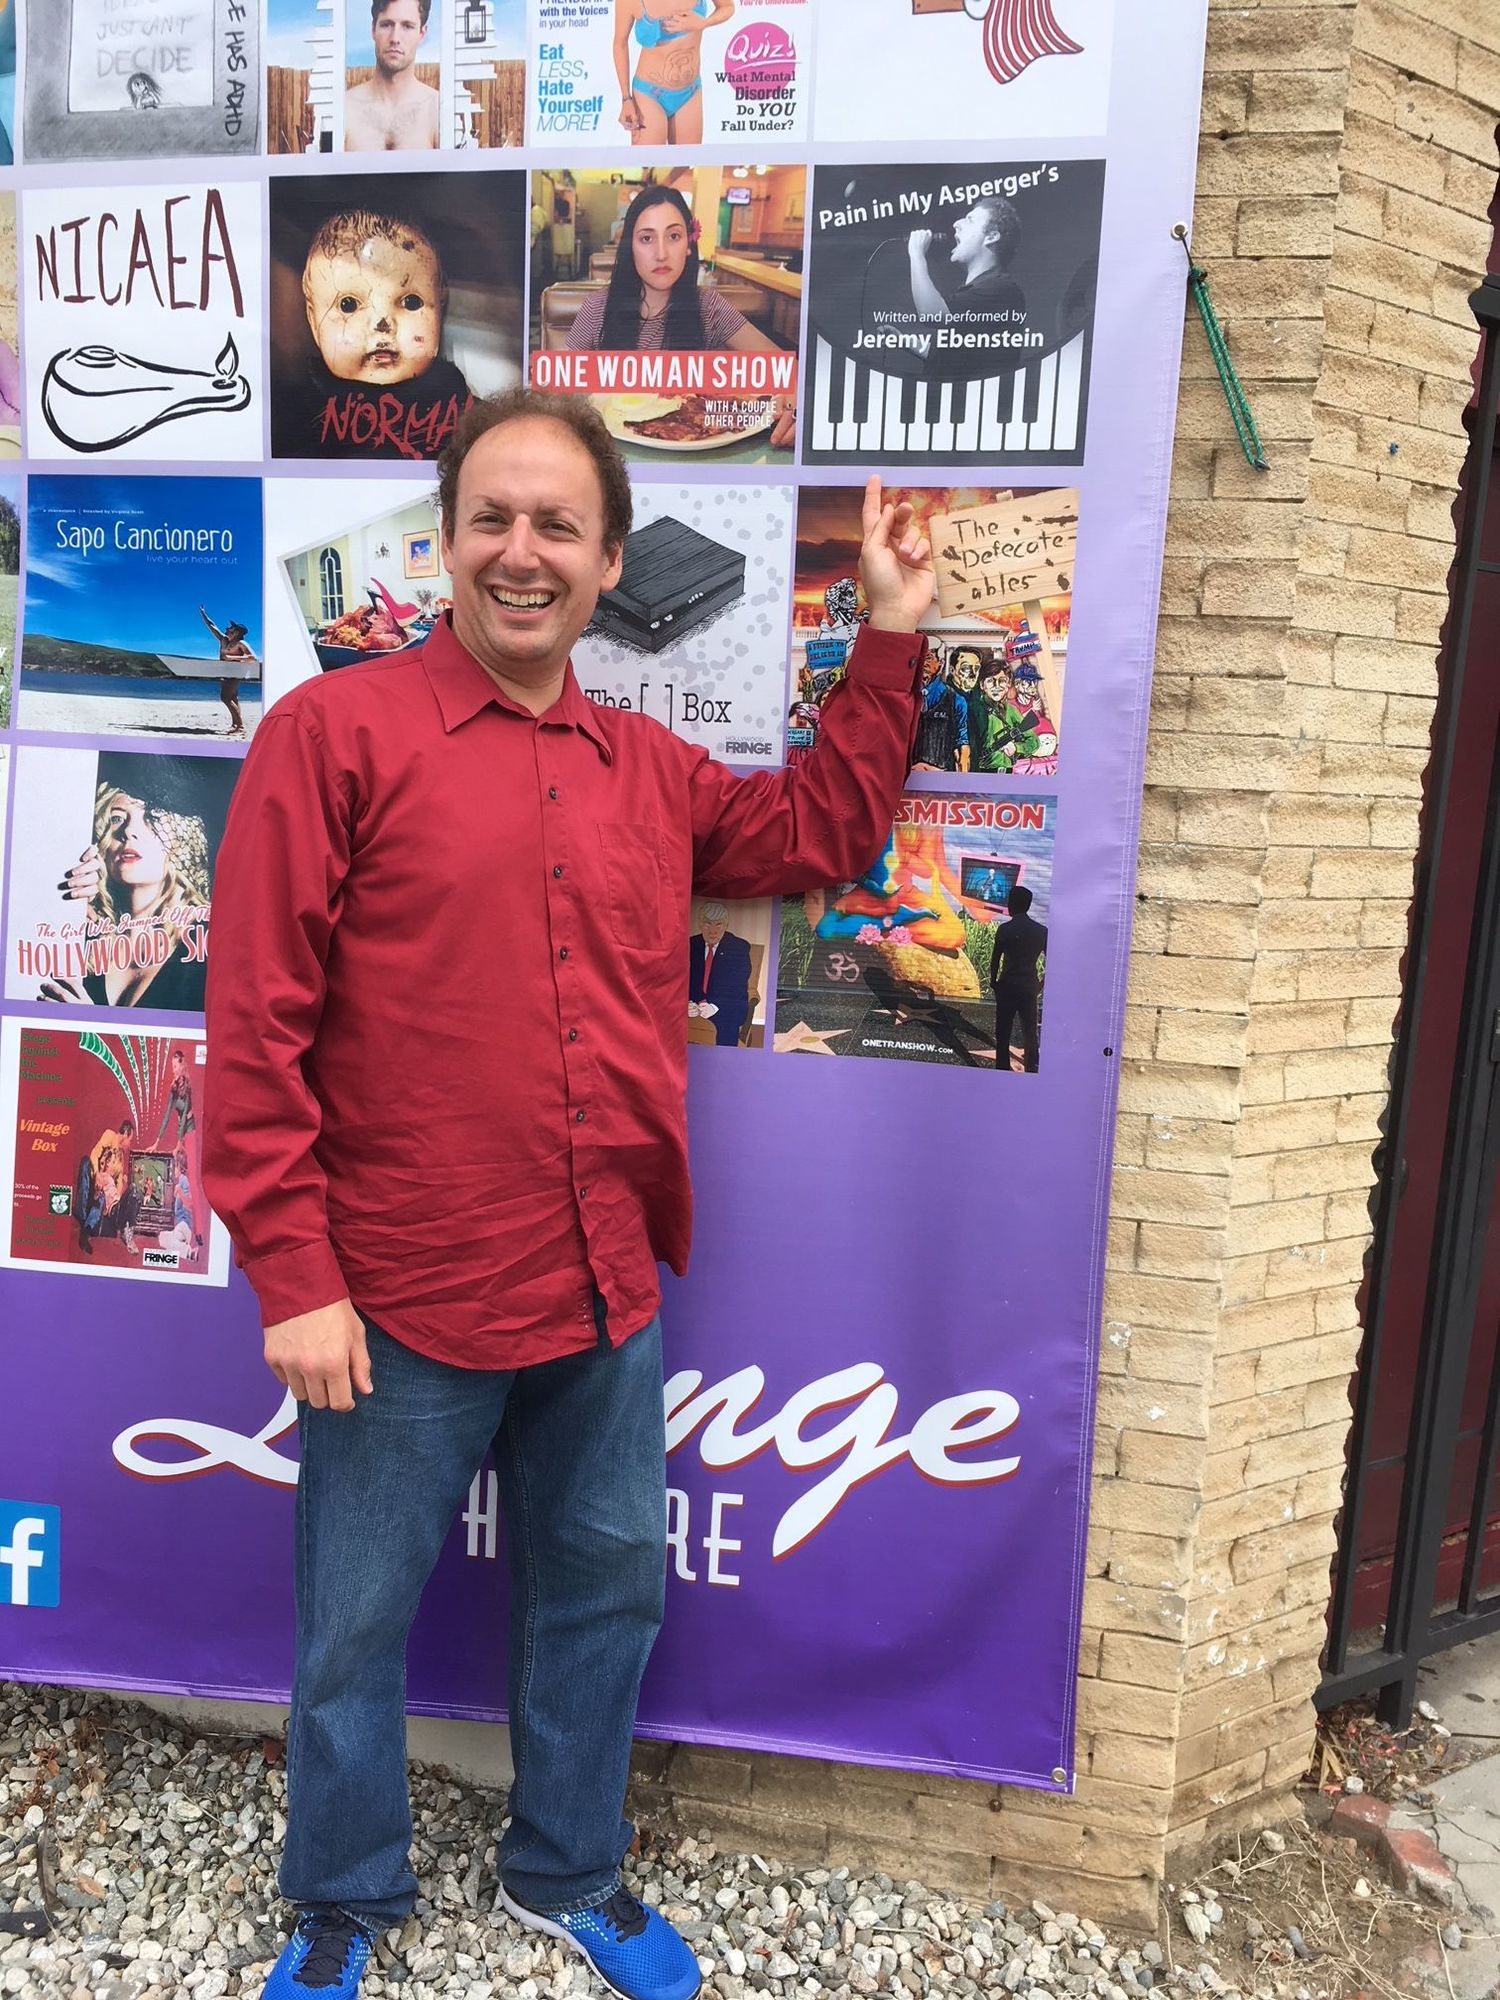 PAIN IN MY ASPERGER'S Returns To The Hollywood Fringe Festival